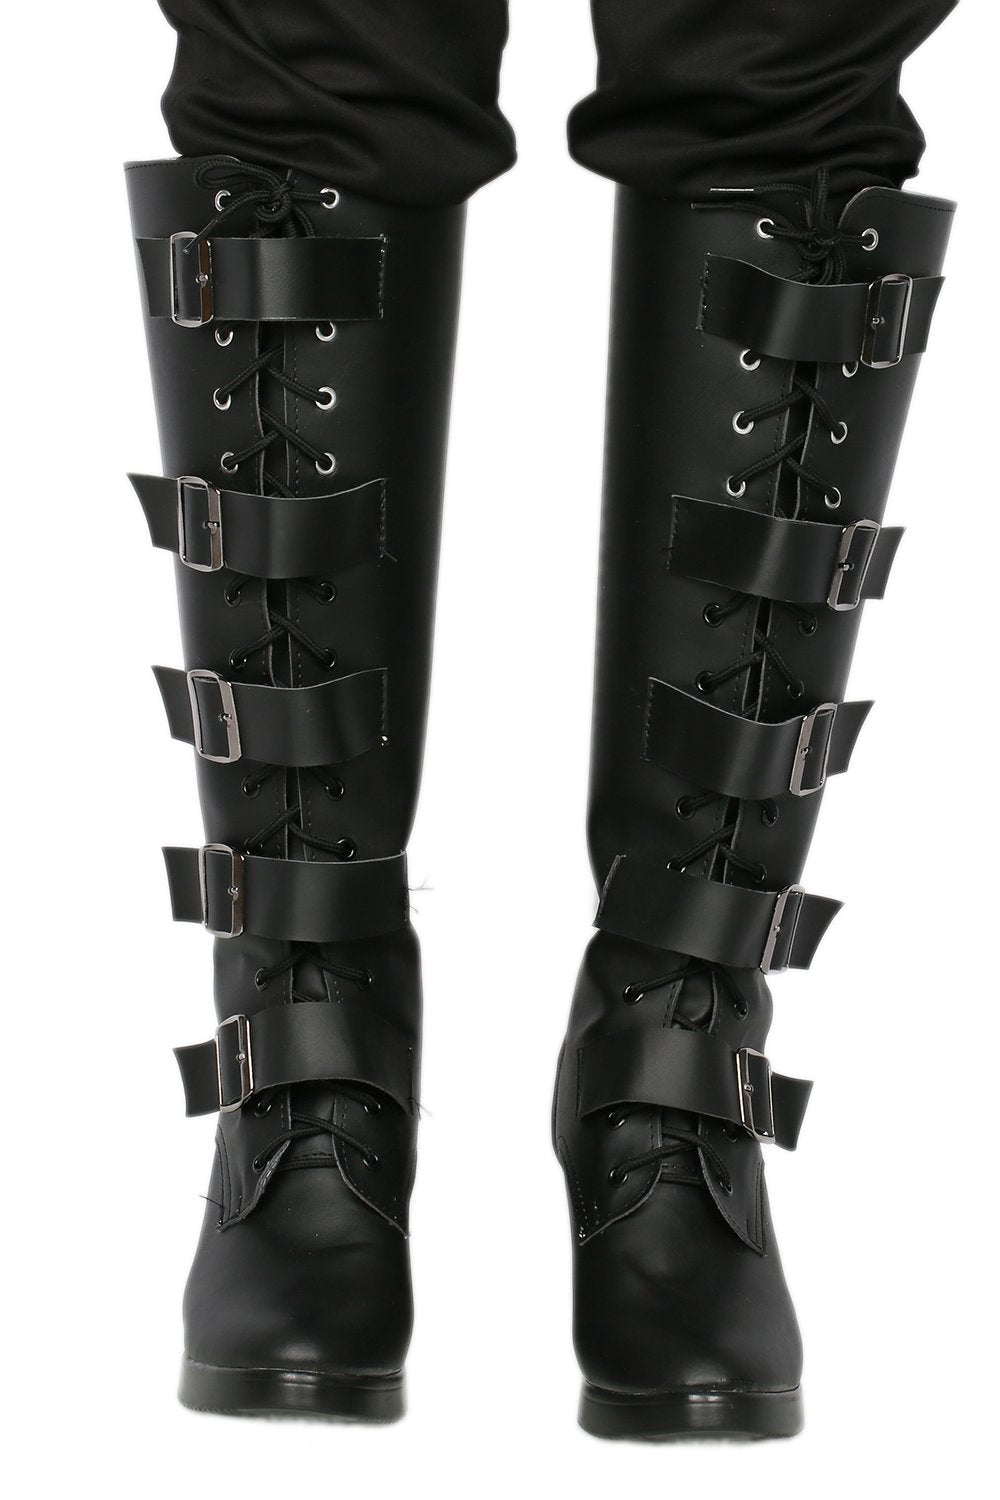 Xcoser Underworld Selene Boots Deluxe Black PU Knee-high Boots Selene Cosplay Shoes